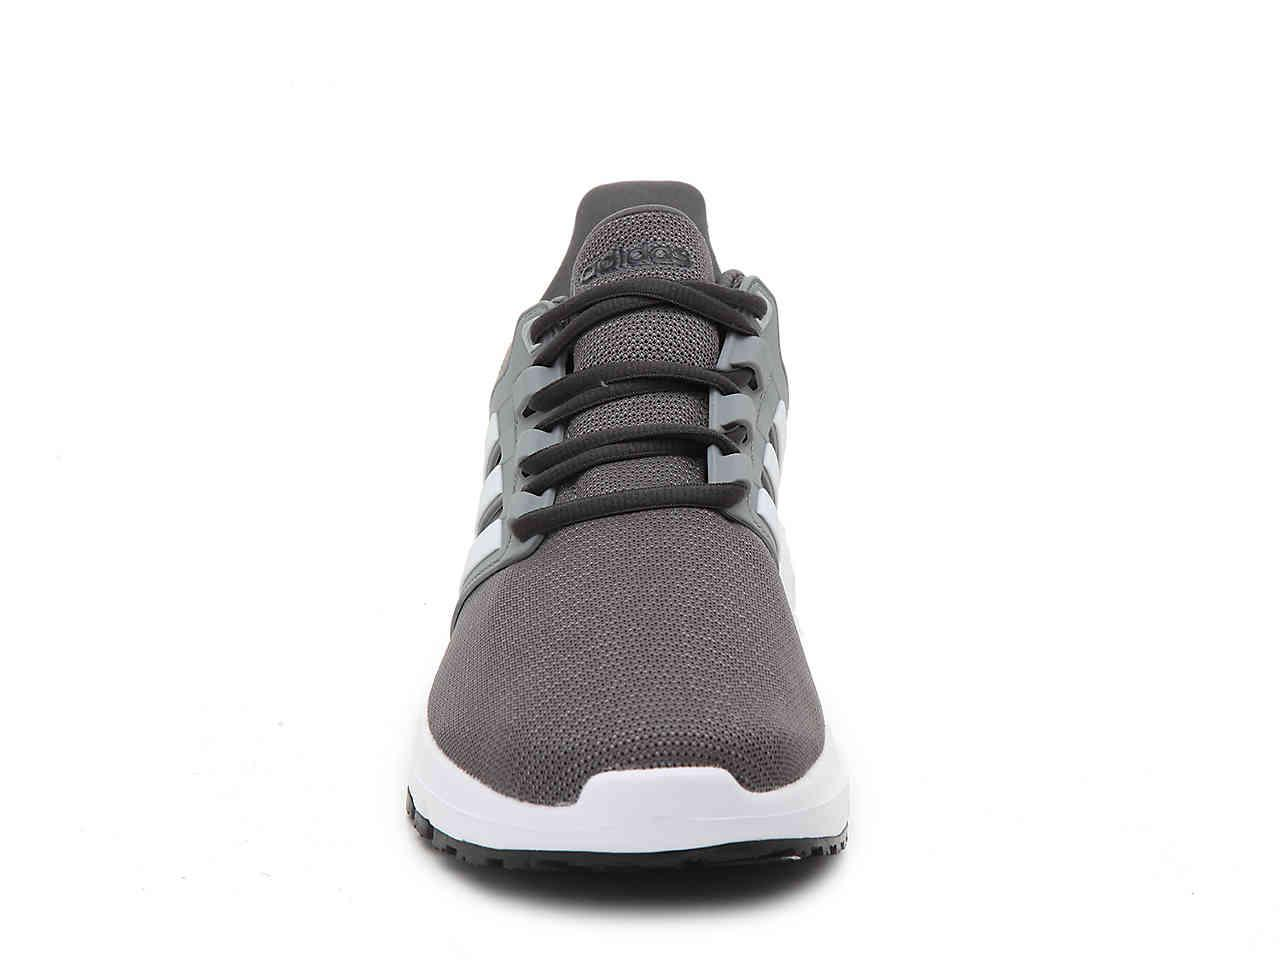 save off 55d5a e21aa Comp Adidas - Gray Energy Cloud 2 Running Shoe for Men - Lyst.